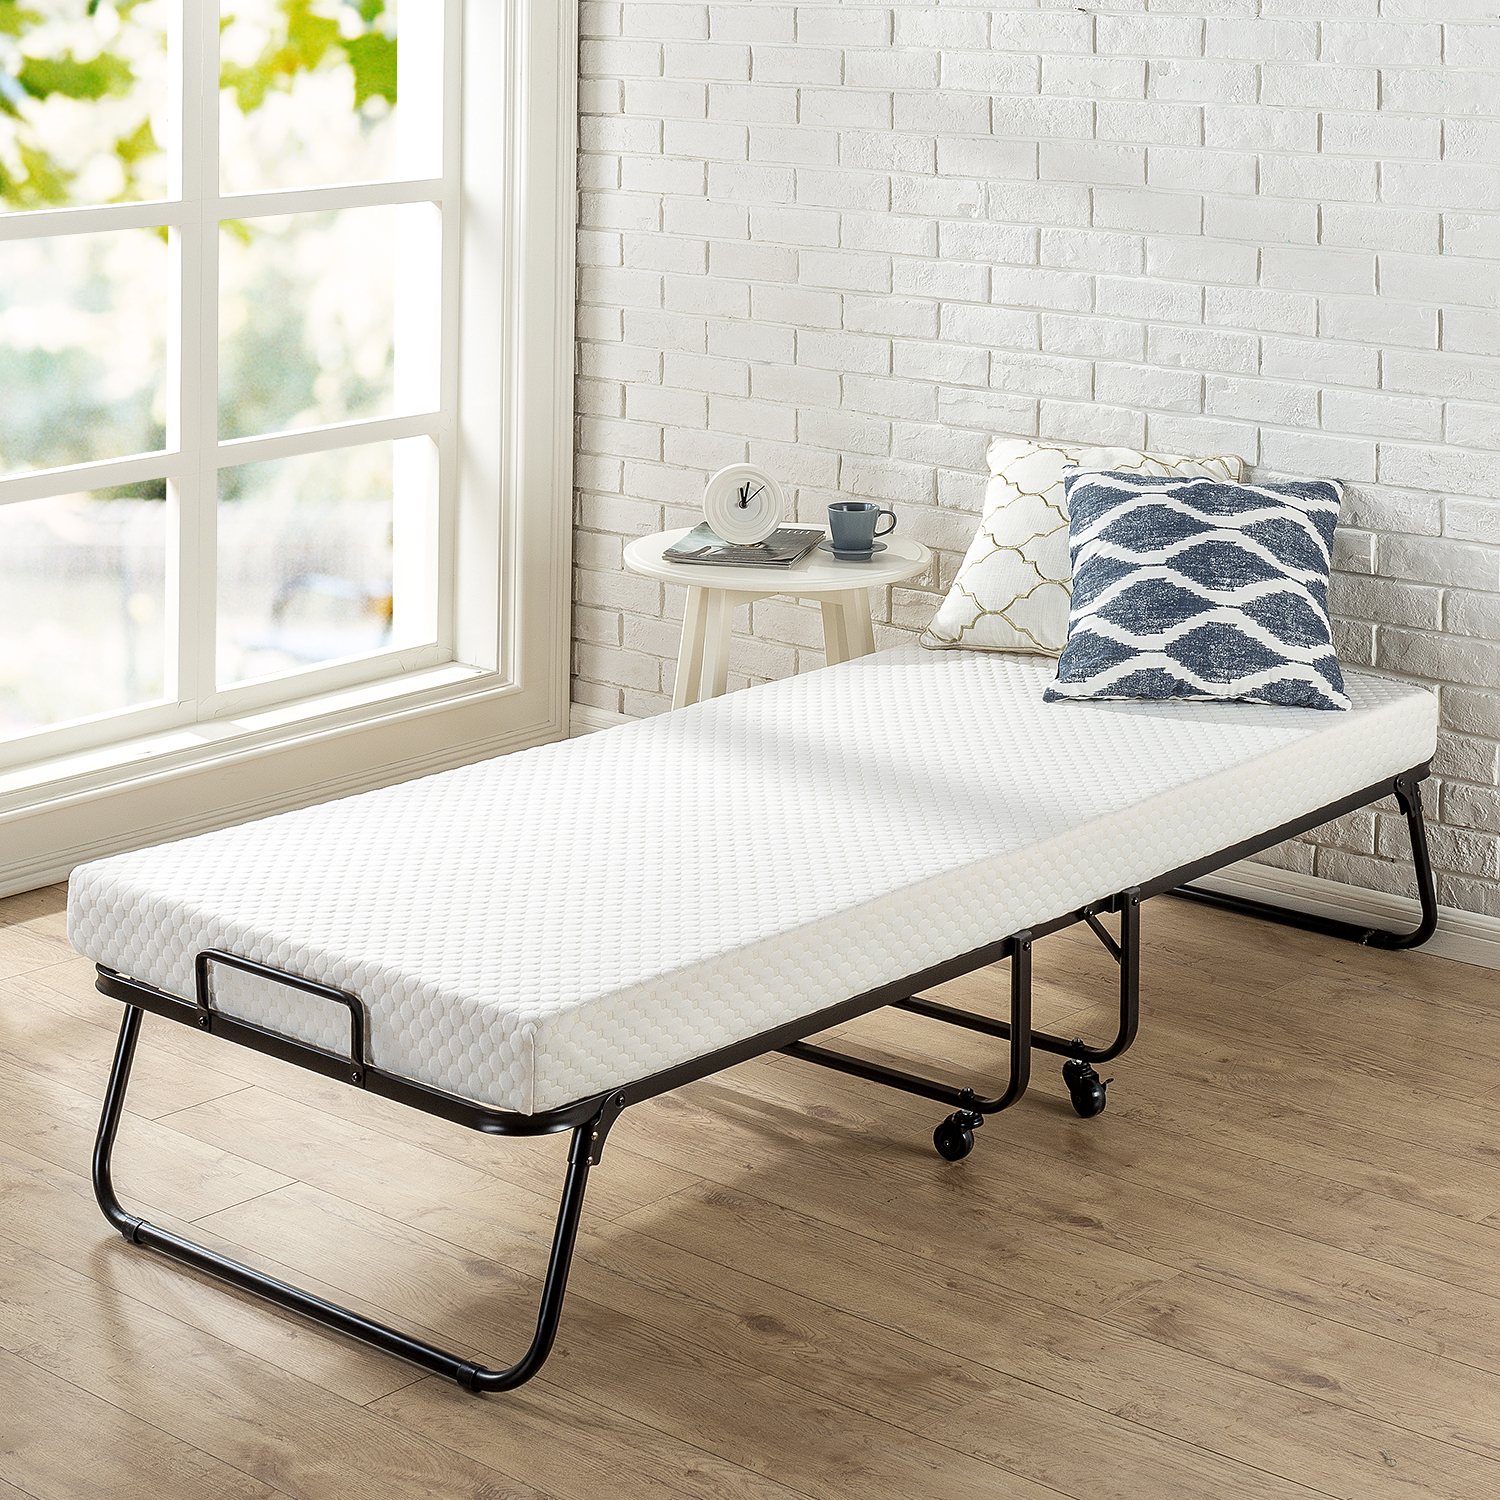 Zinus Roll Away Folding Guest Bed with Mattress, Narrow Twin